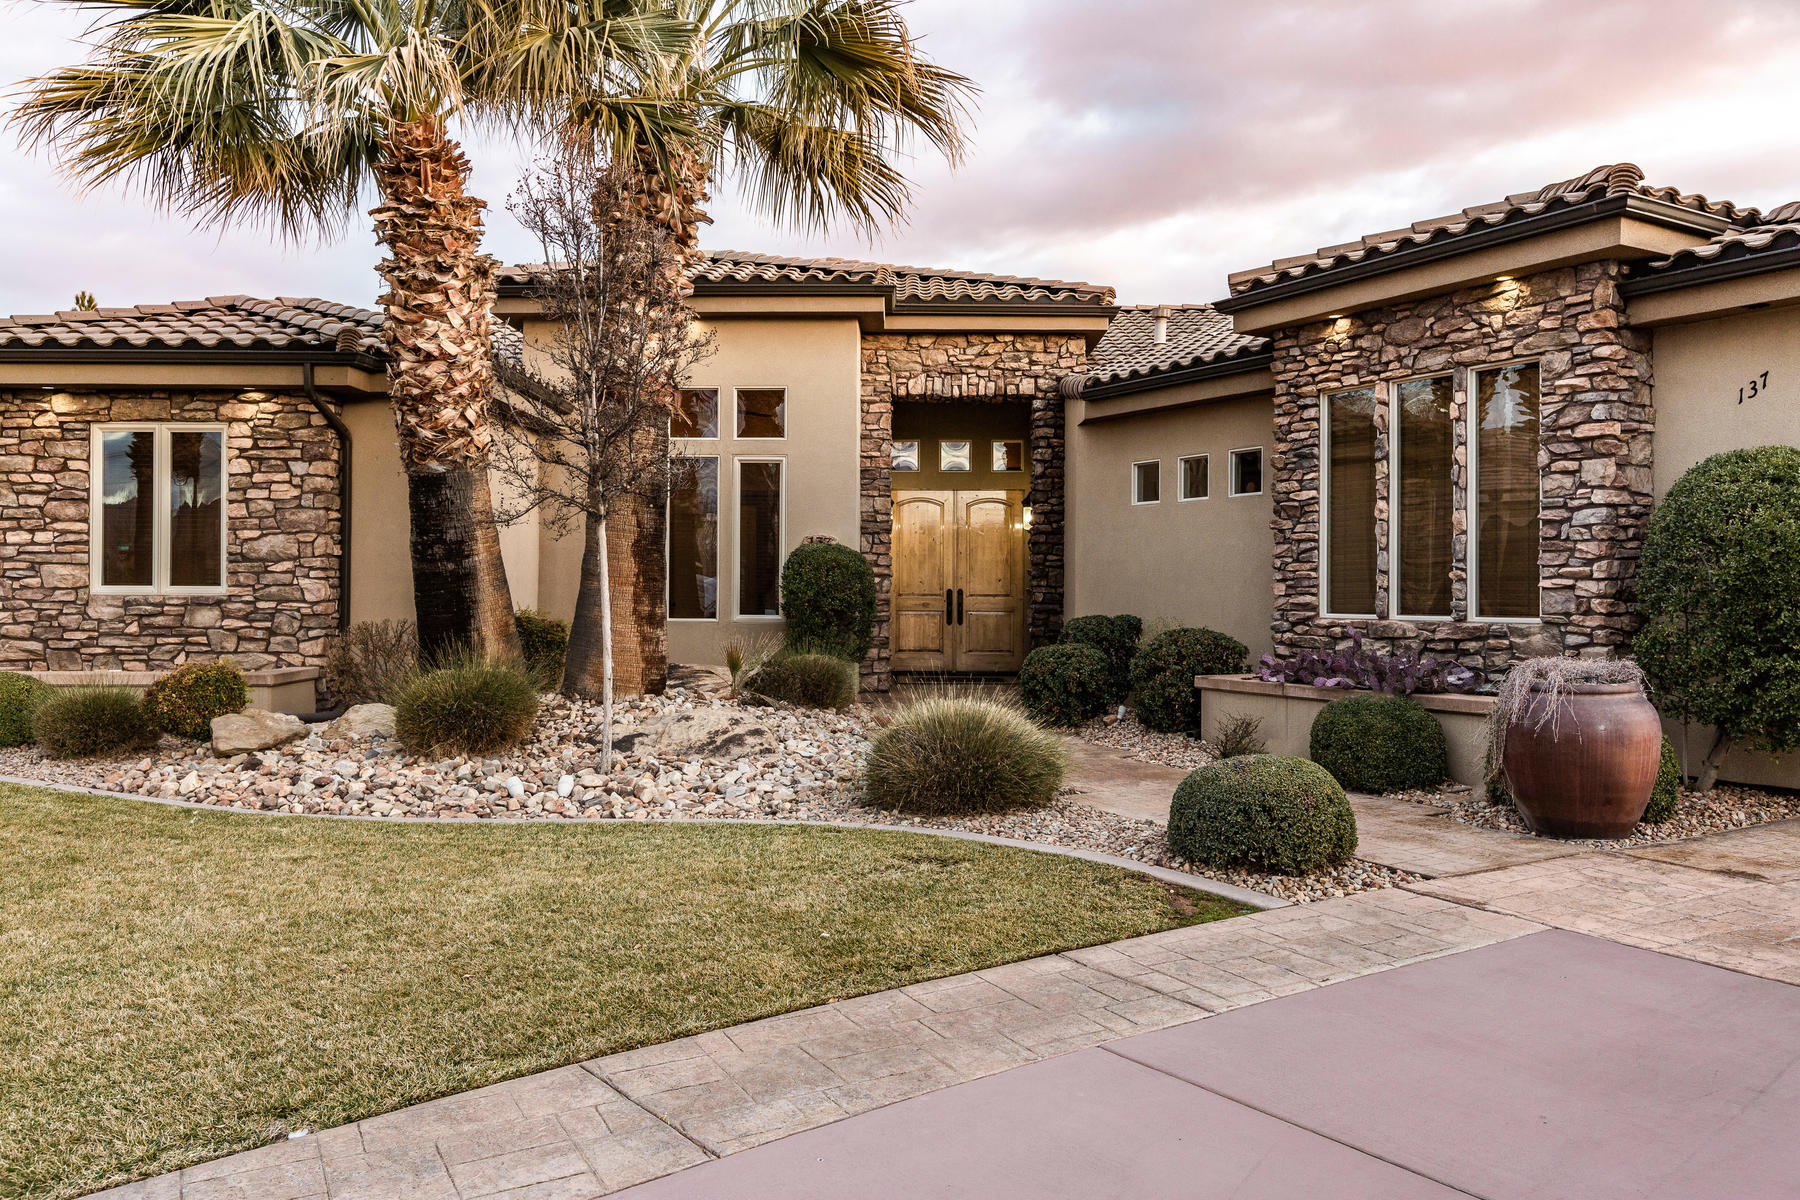 Single Family Homes for Active at Inviting and Elegant 137 South 1790 West Circle St. George, Utah 84770 United States